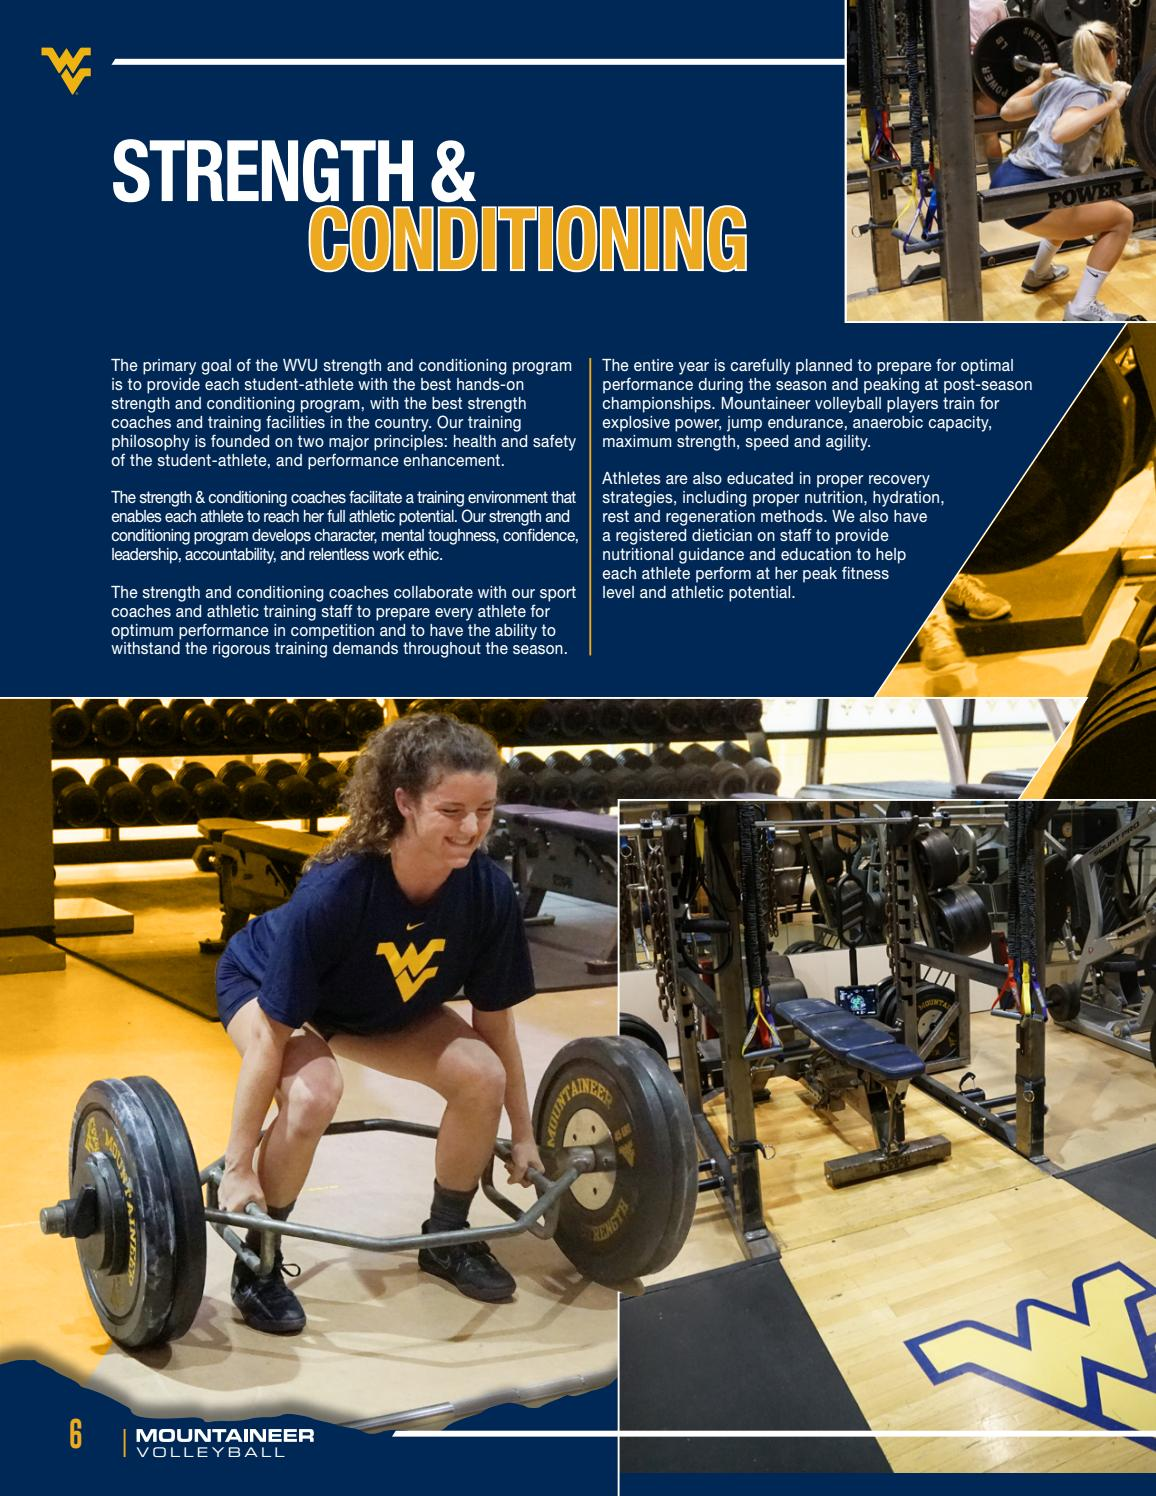 Best Strength And Conditioning Program